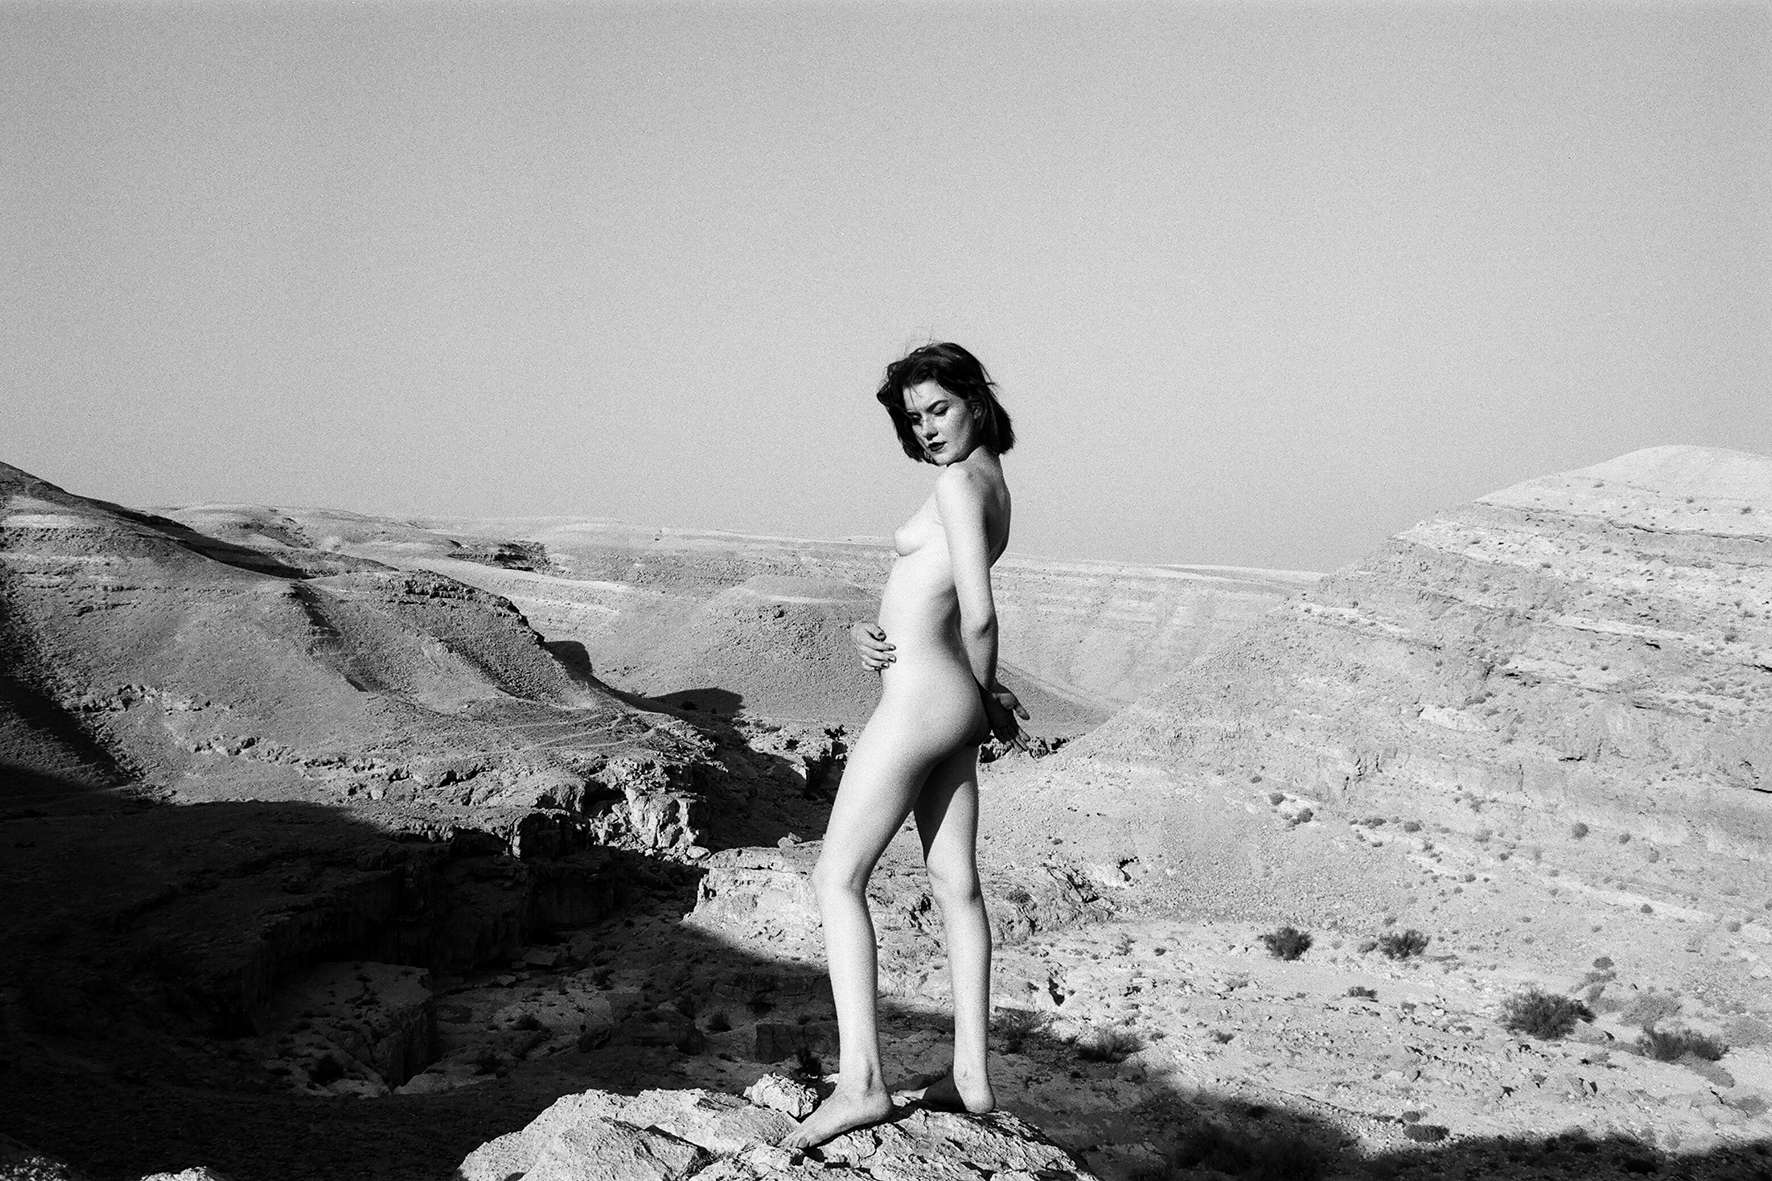 James_Whitmore_Wilma_space_2.jpg